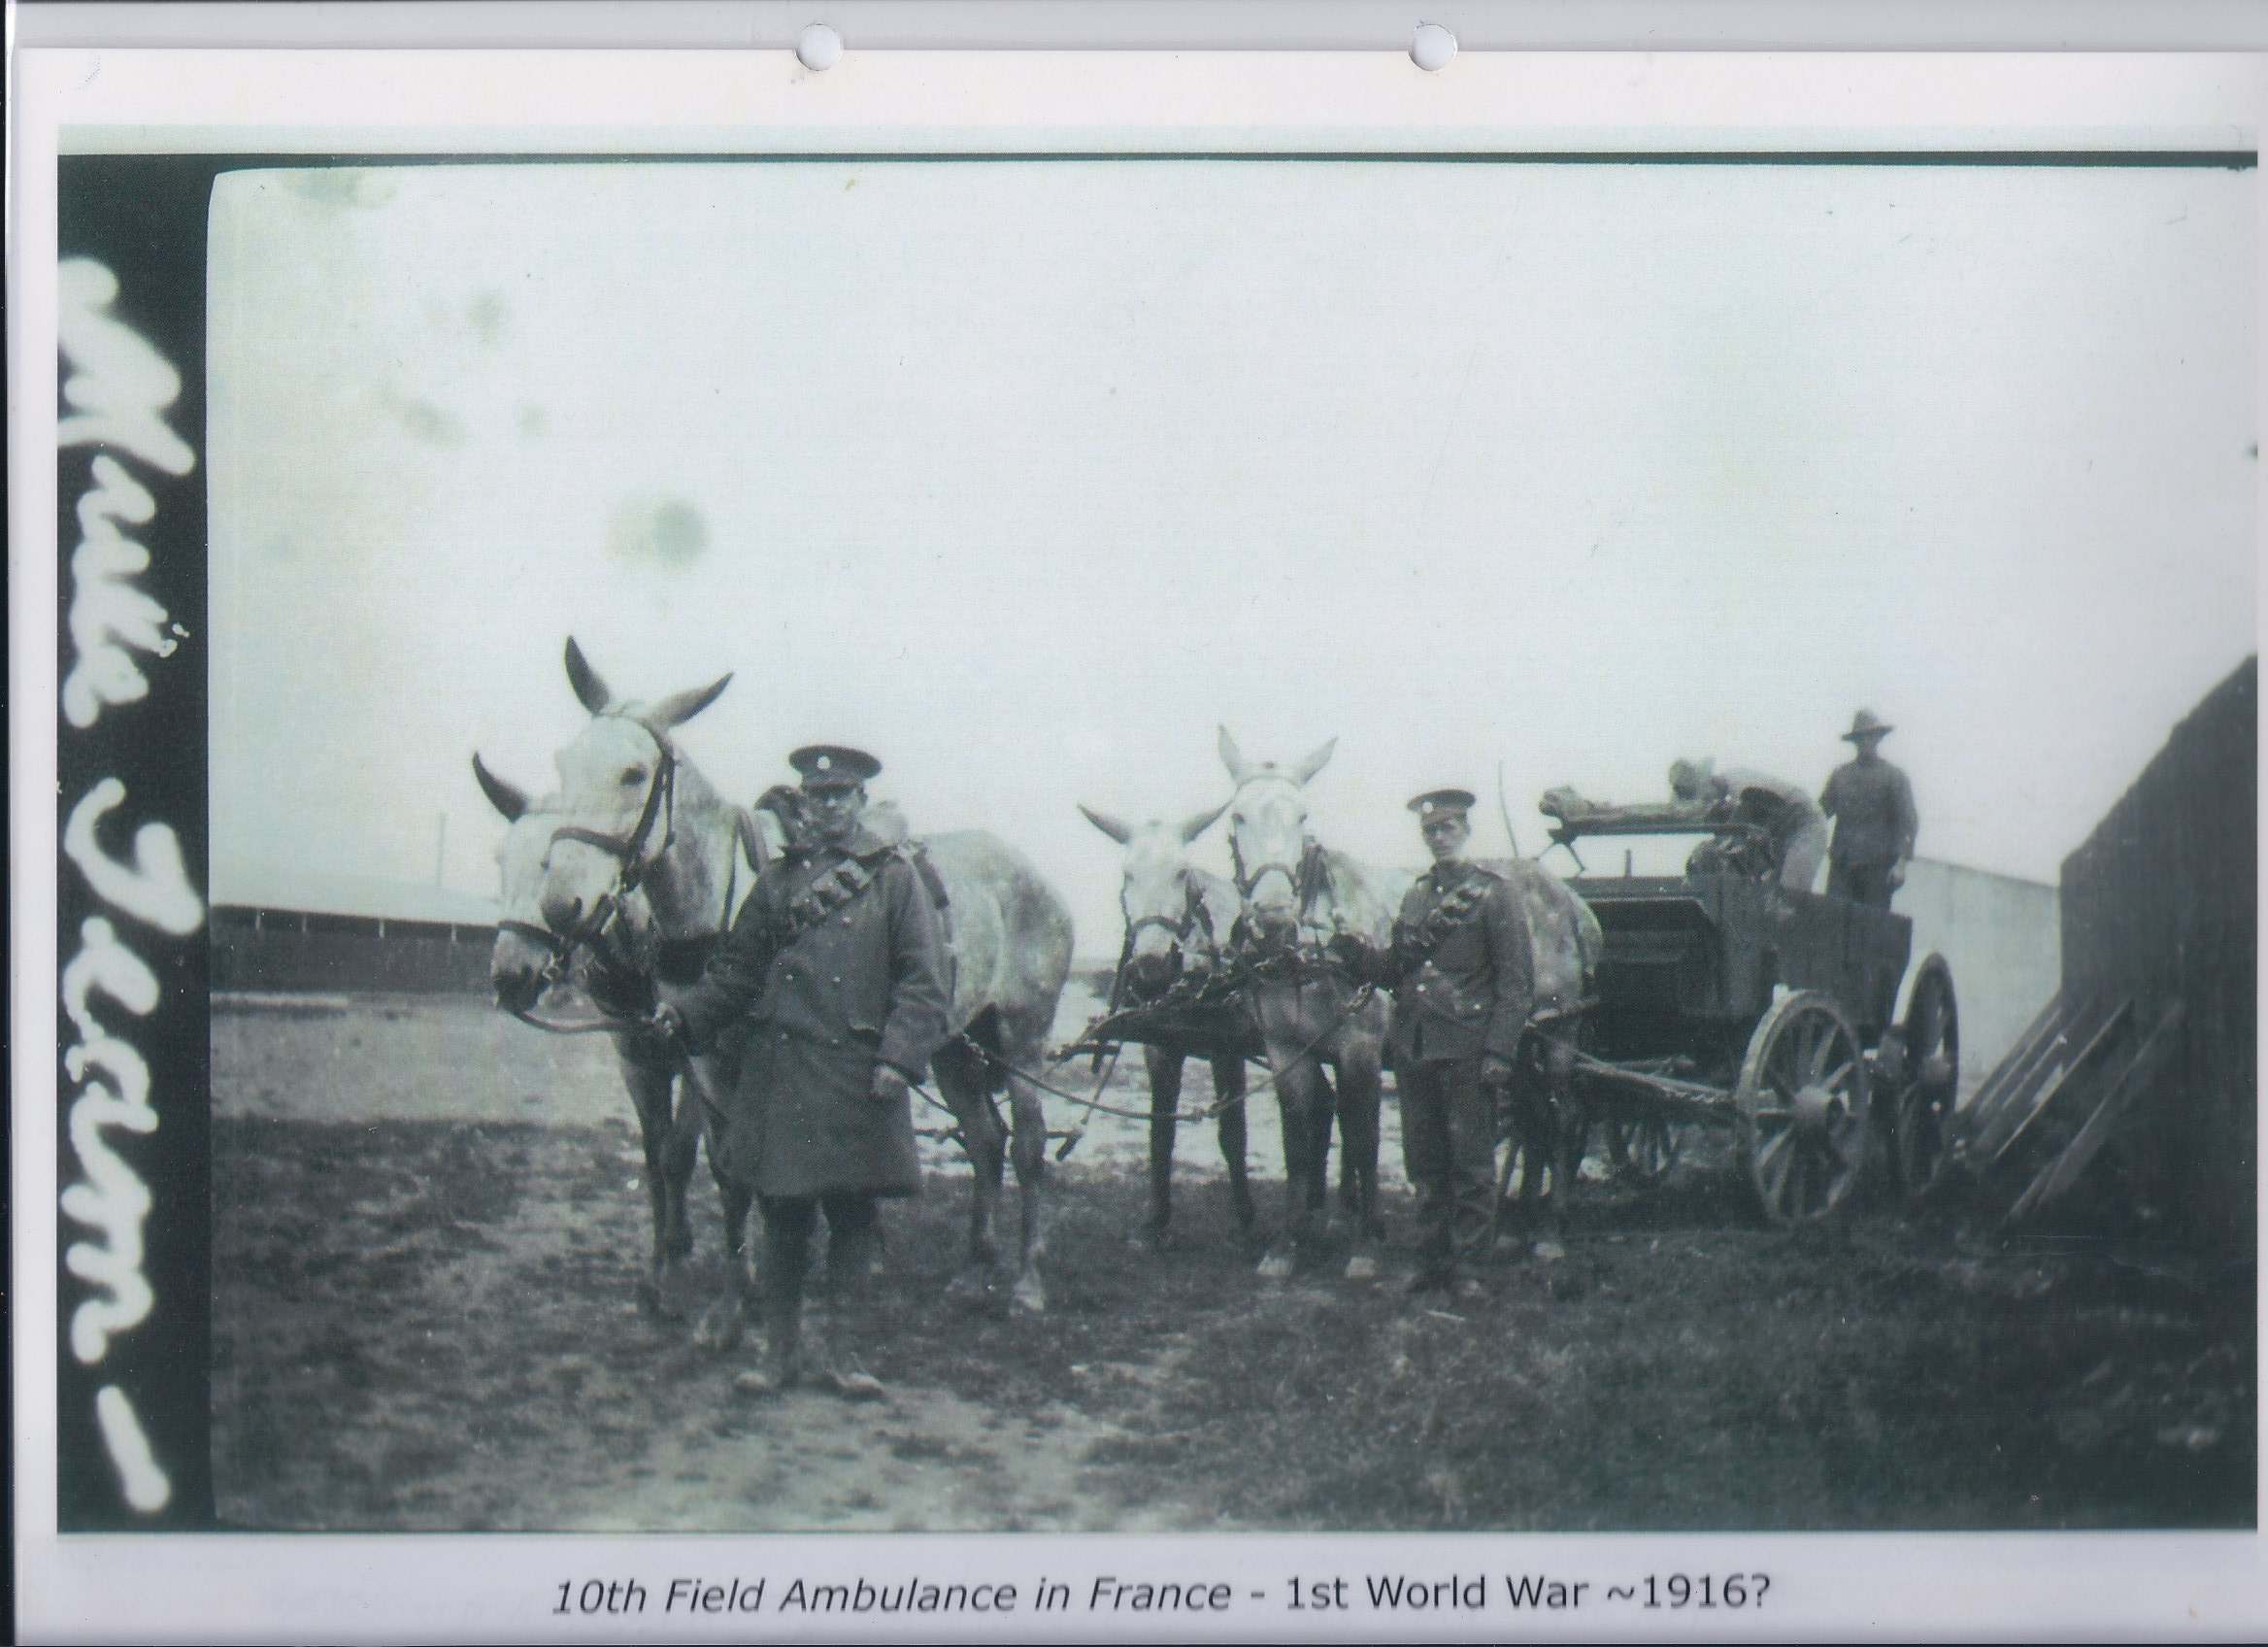 10th Field Ambulance in France - First World War 1916